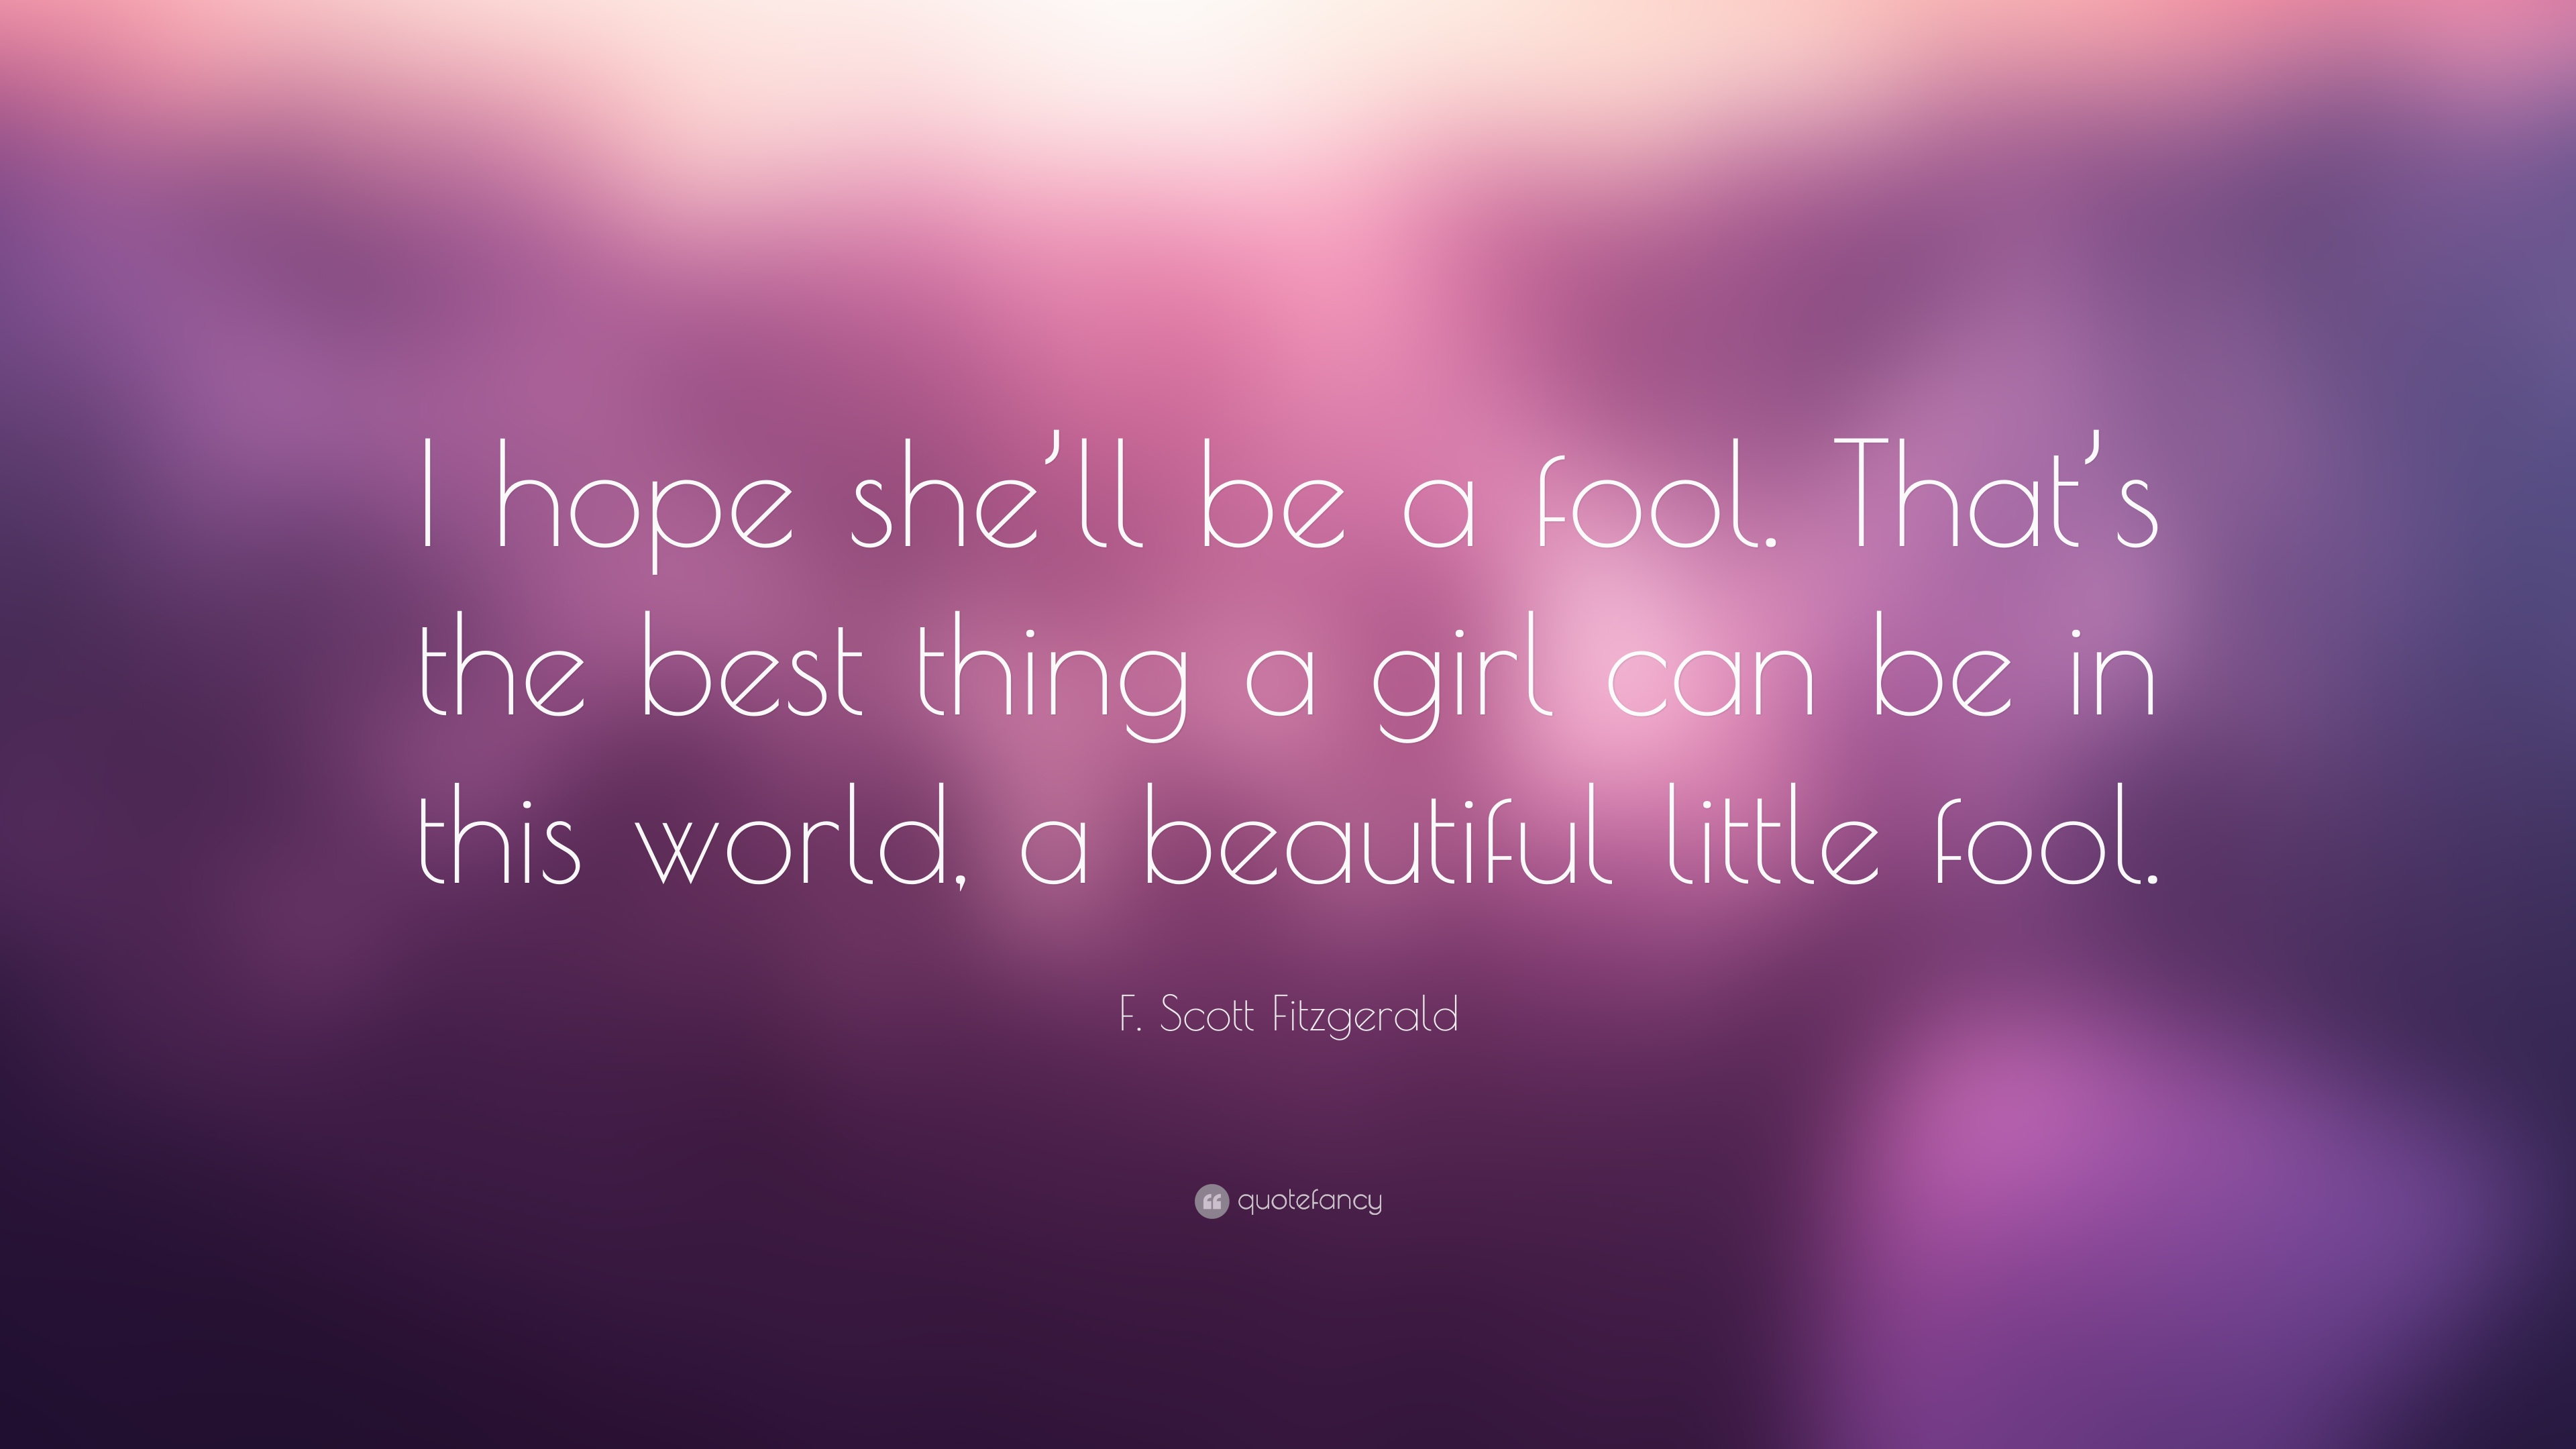 'that's the best thing a girl A great memorable quote from the the great gatsby movie on quotesnet - daisy buchanan: i hope she'll be a fool - that's the best thing a girl can be in this world, a beautiful little fool.